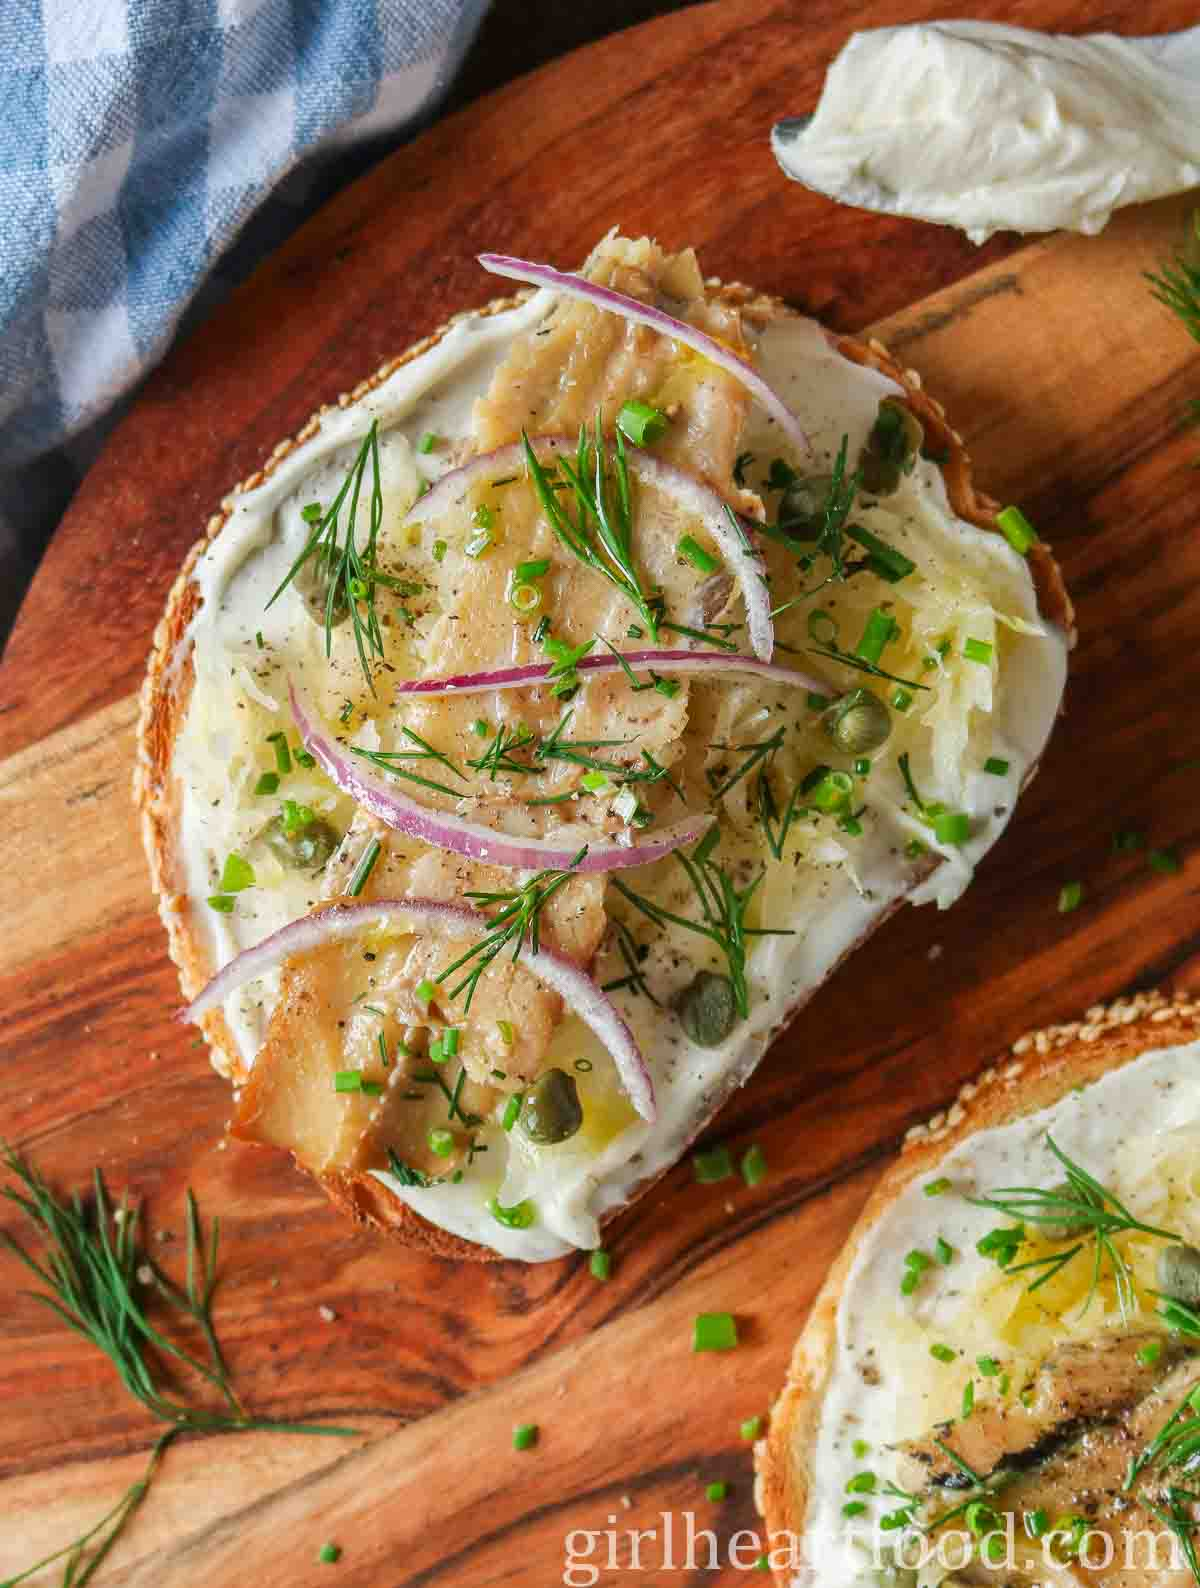 Overhead shot of an open face herring sandwich on a wooden board.